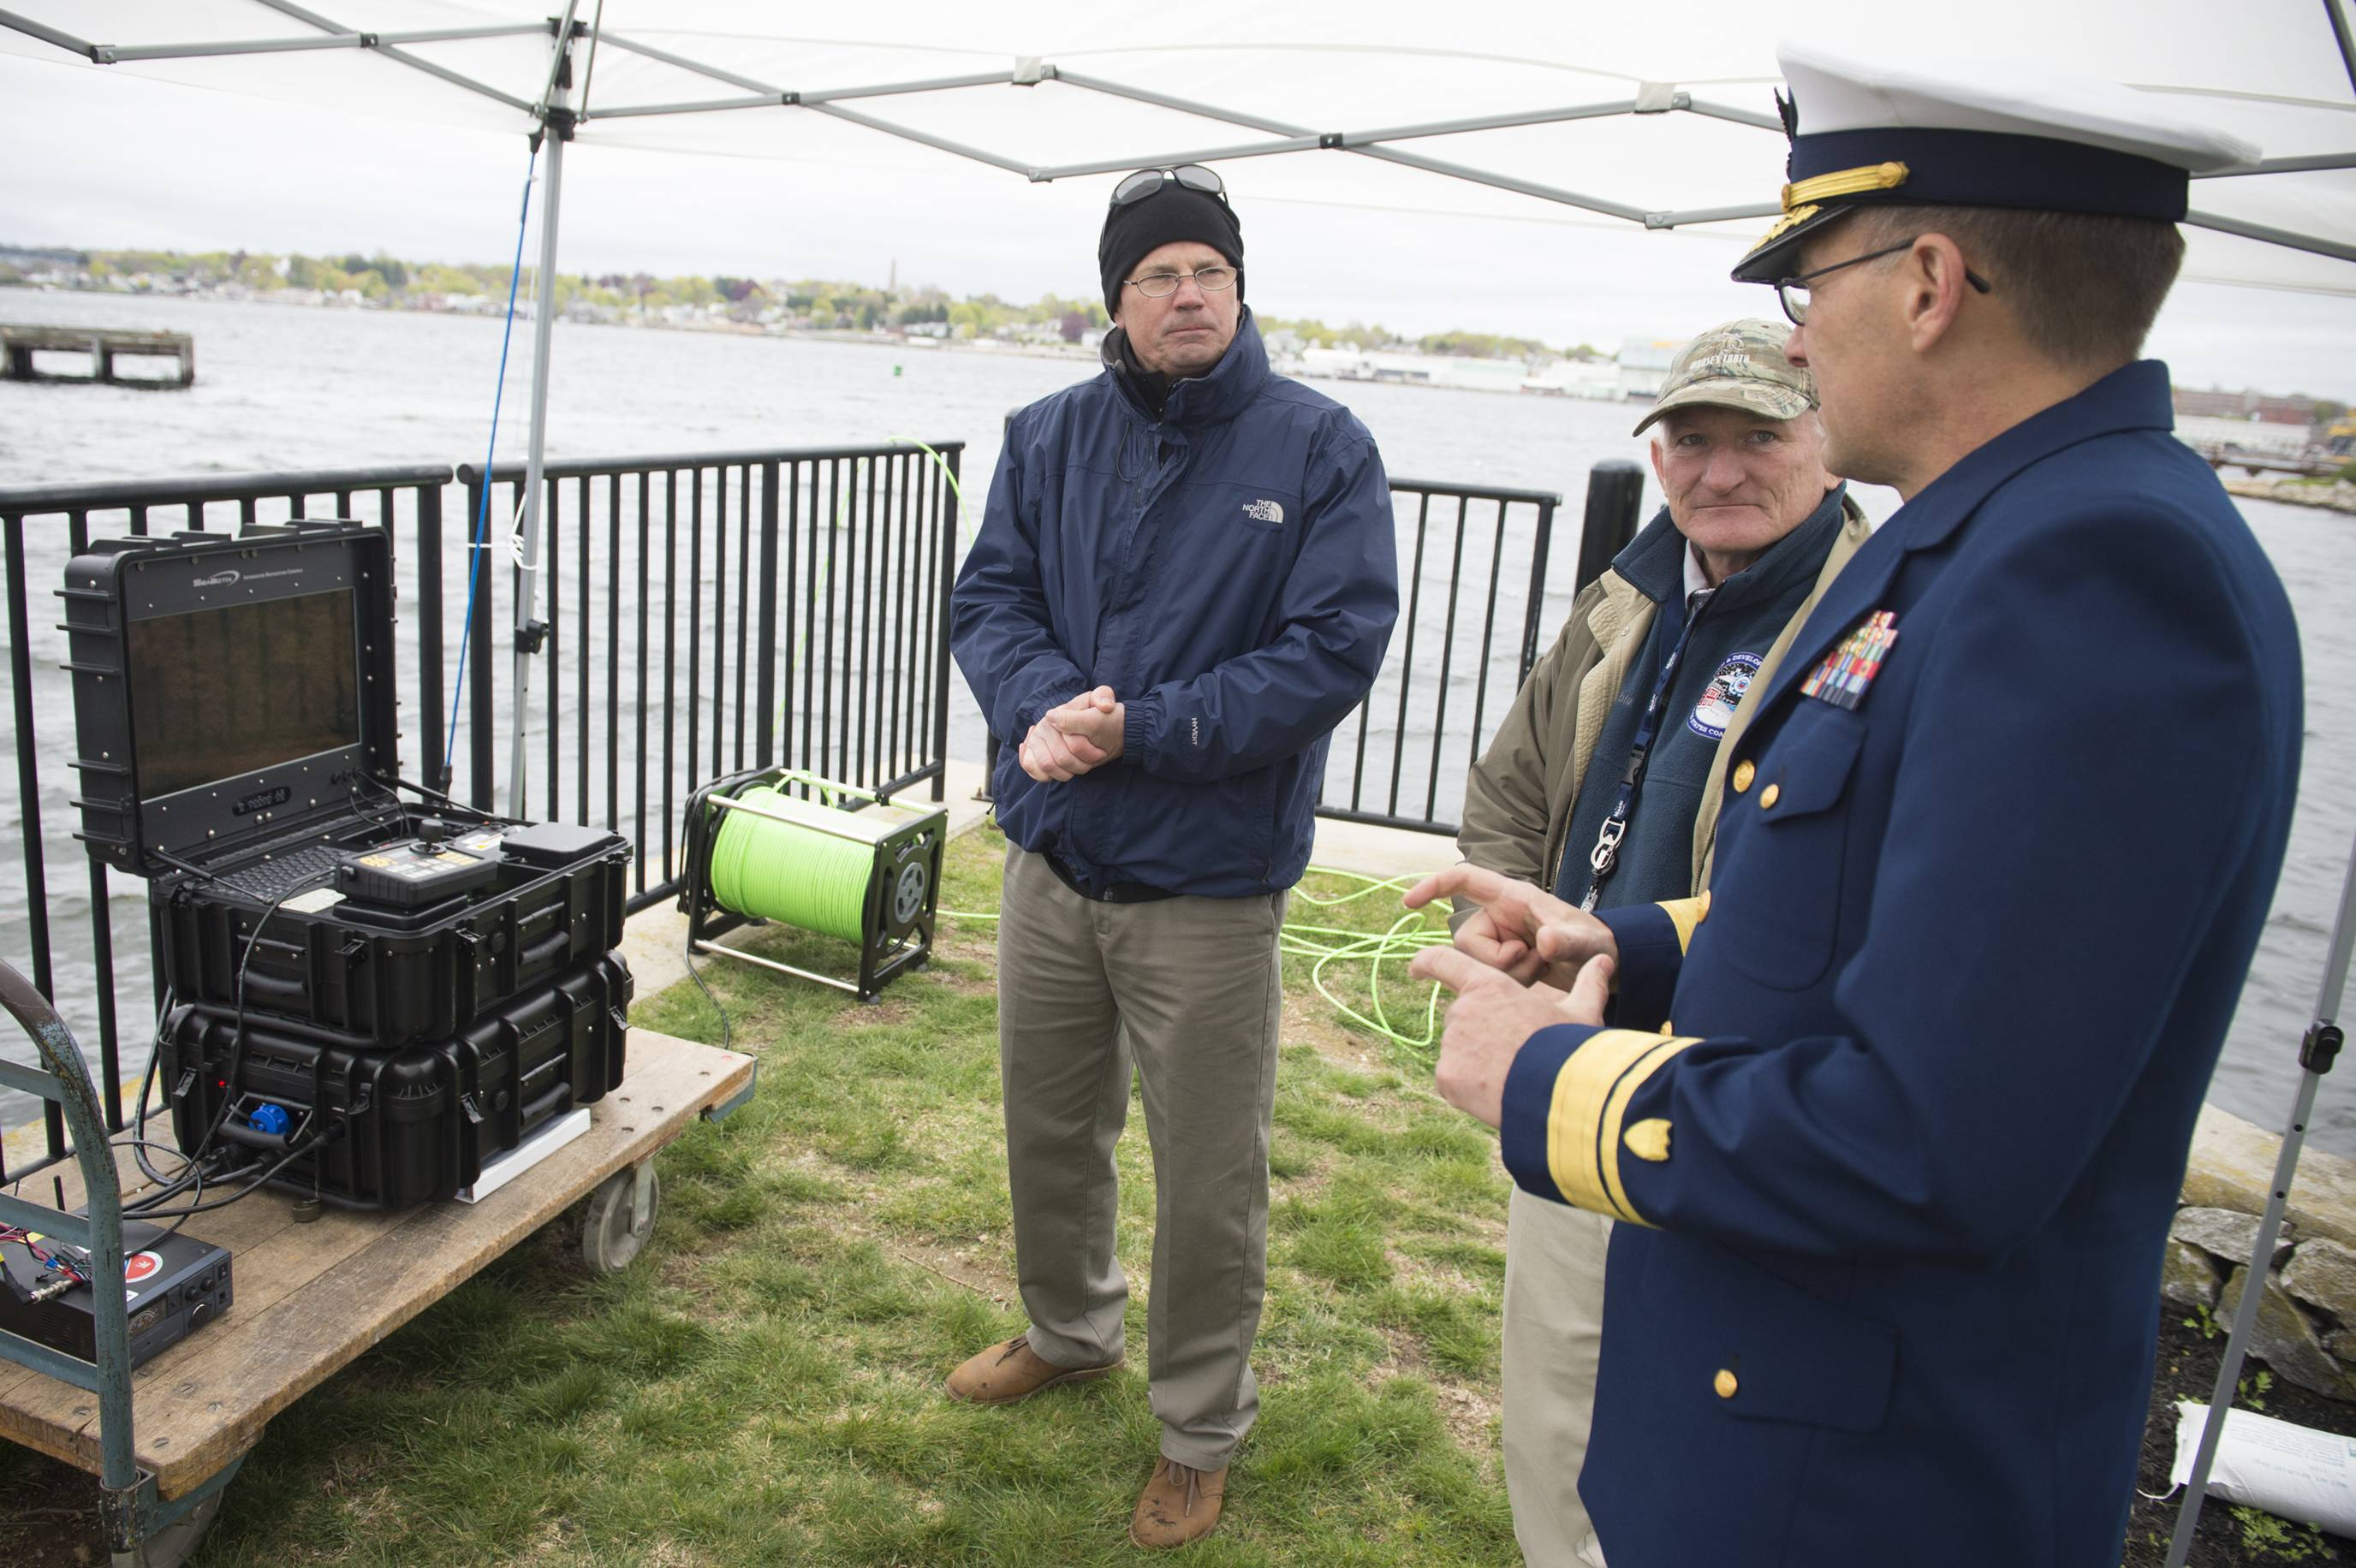 Coast Guard Homeland Security Open Joint RD Facility